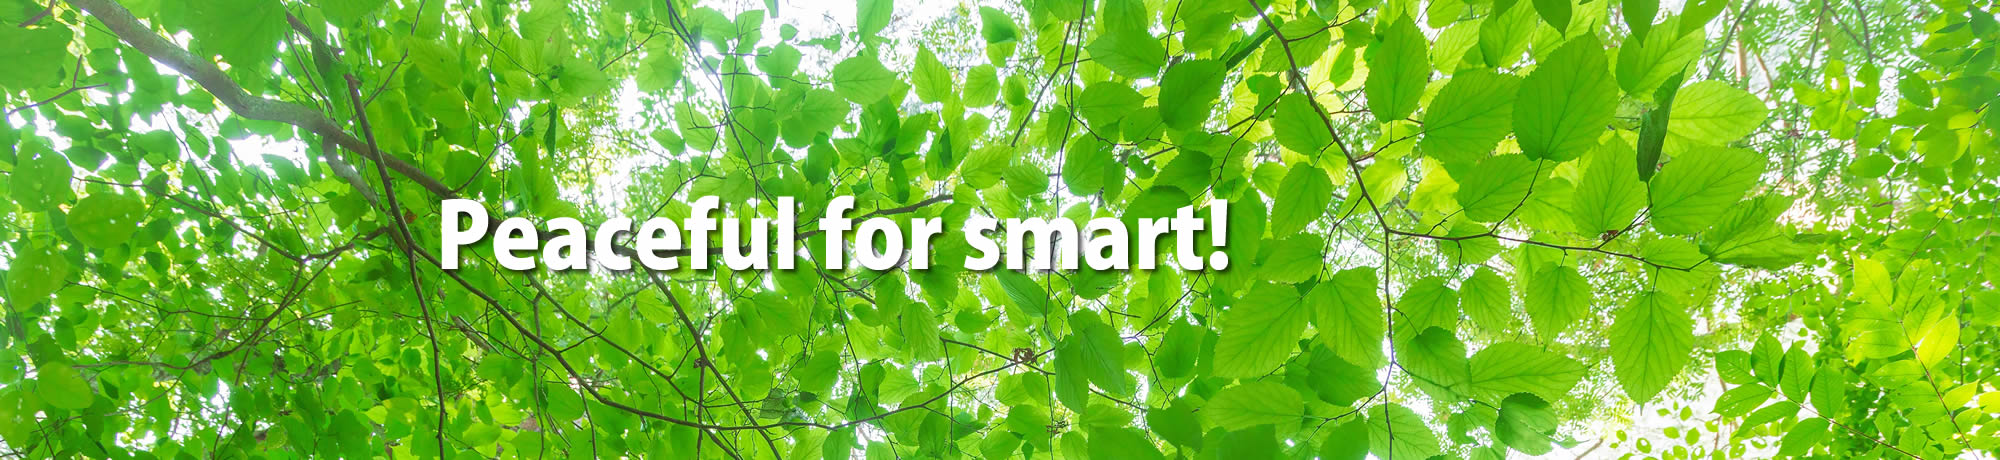 Peaceful for smart!